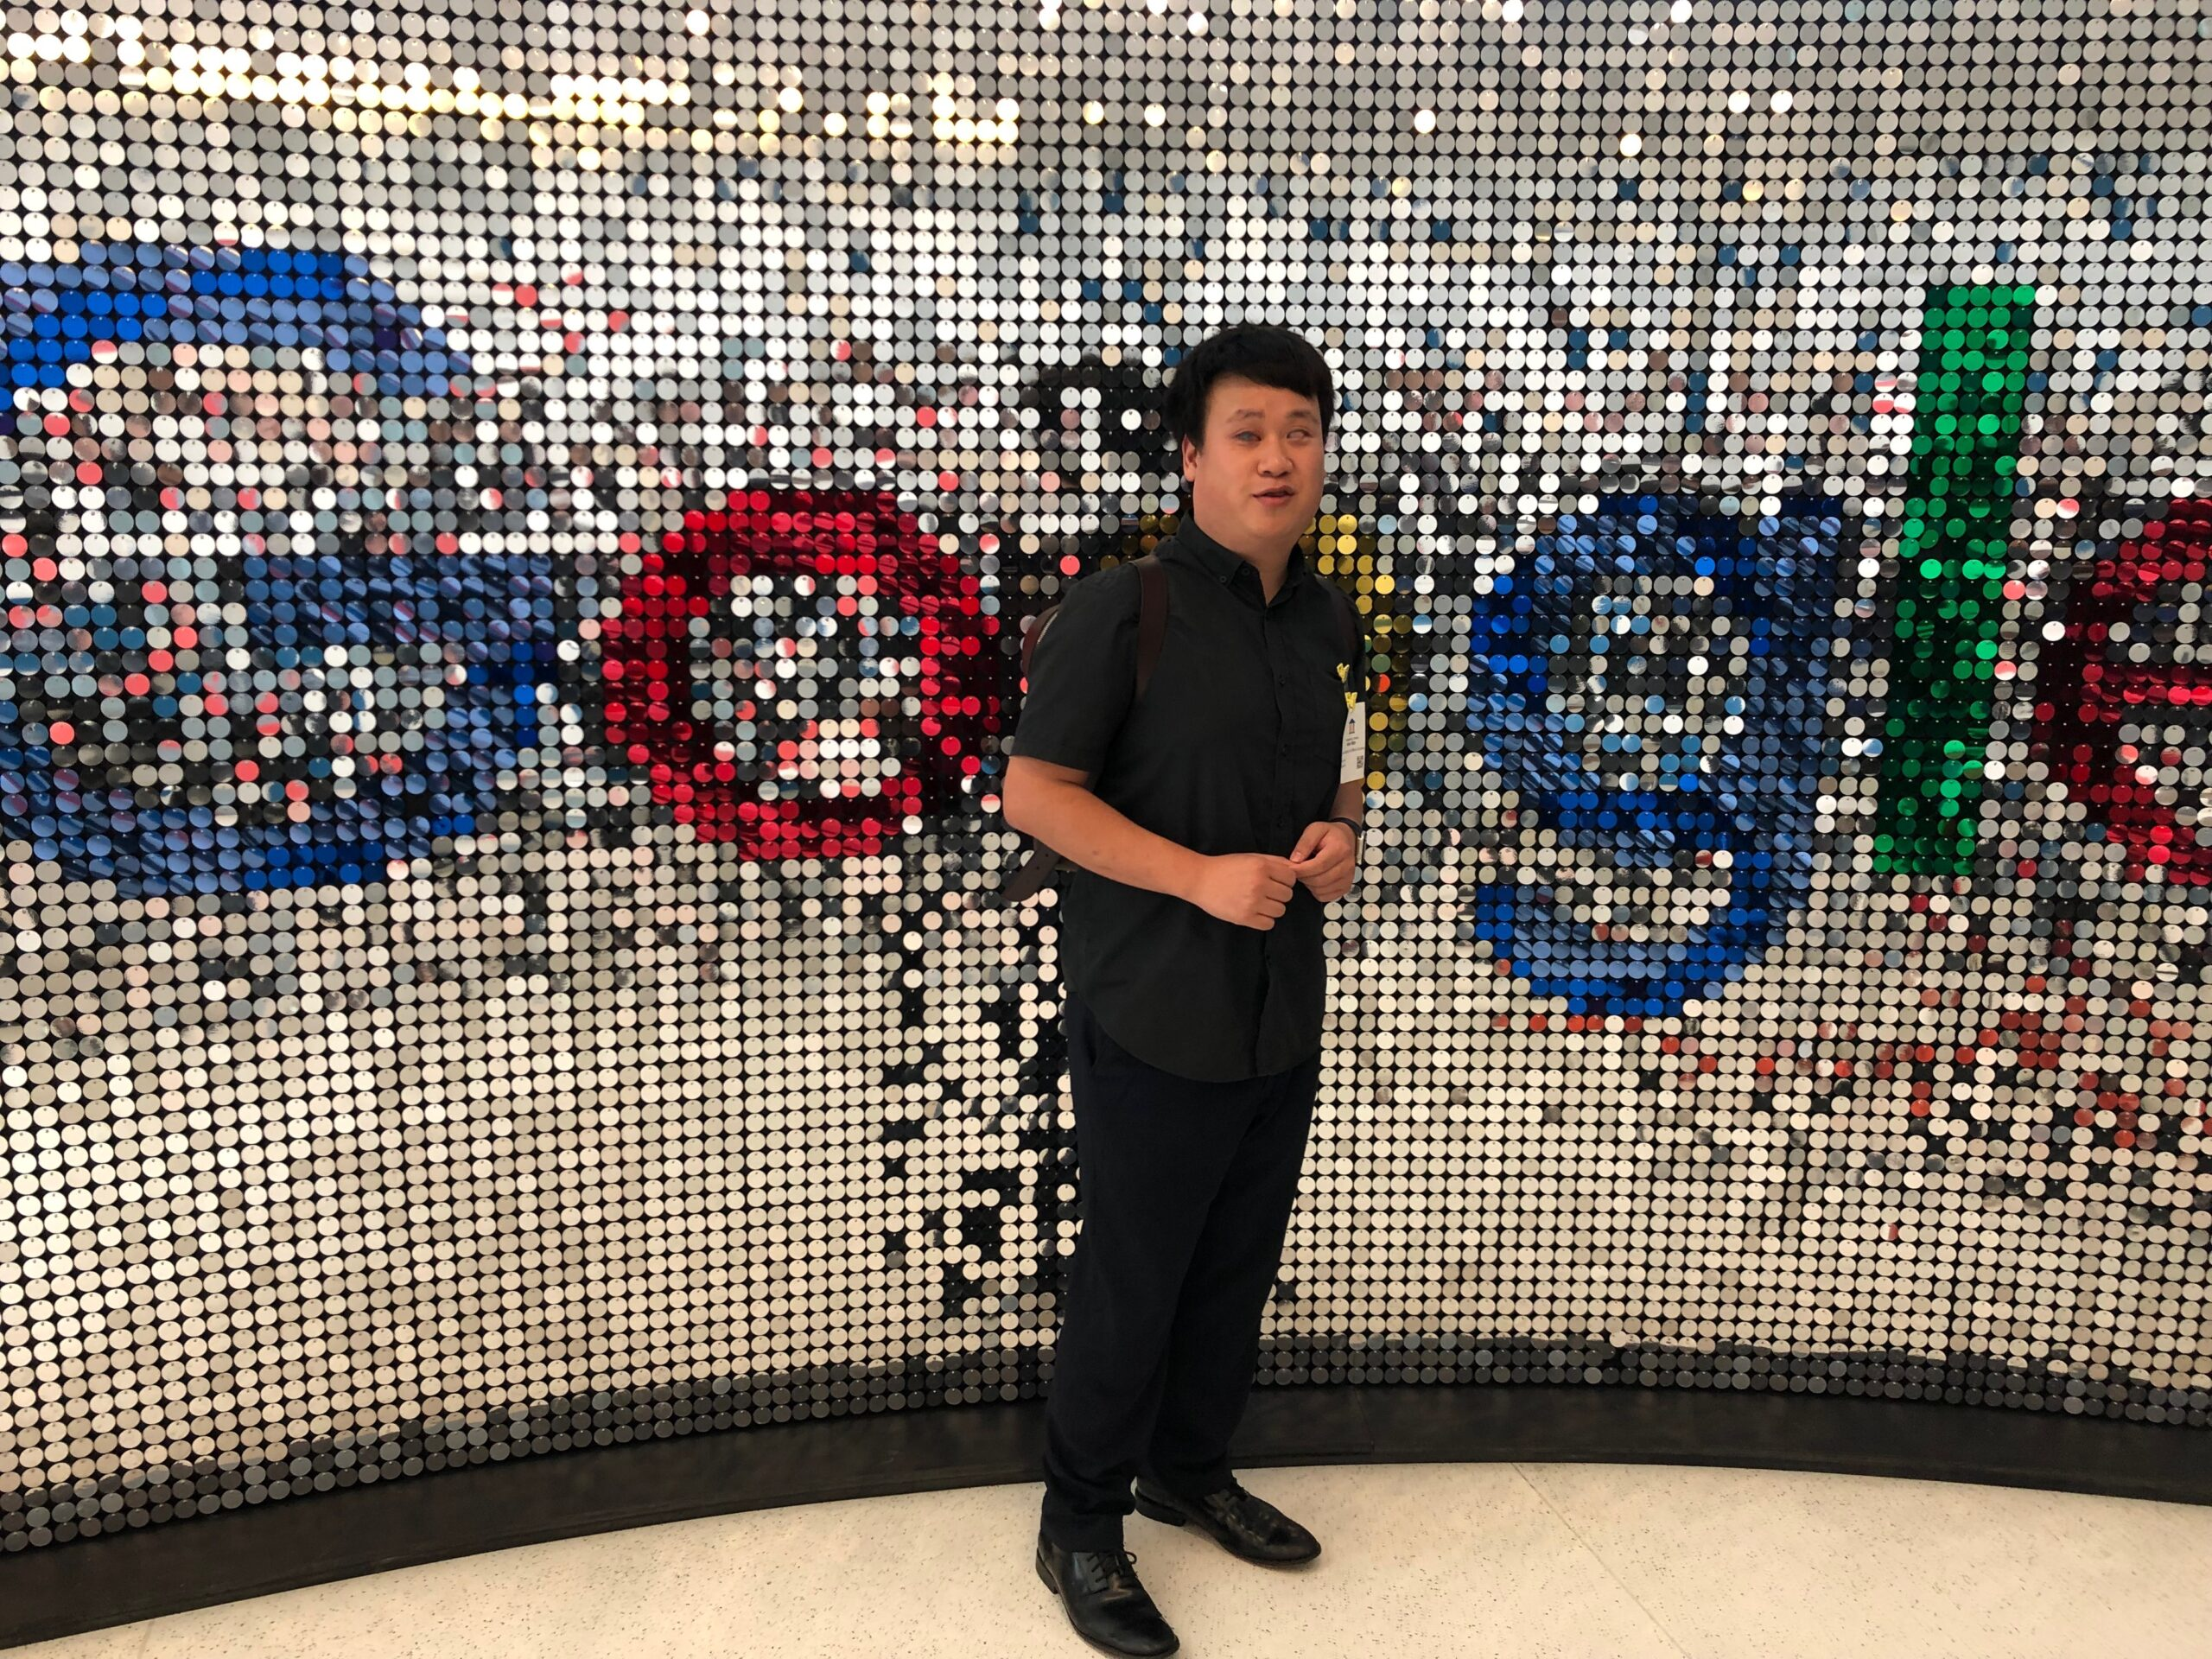 Dressed in a smart dark shirt, Alex stands in front of a Google logo